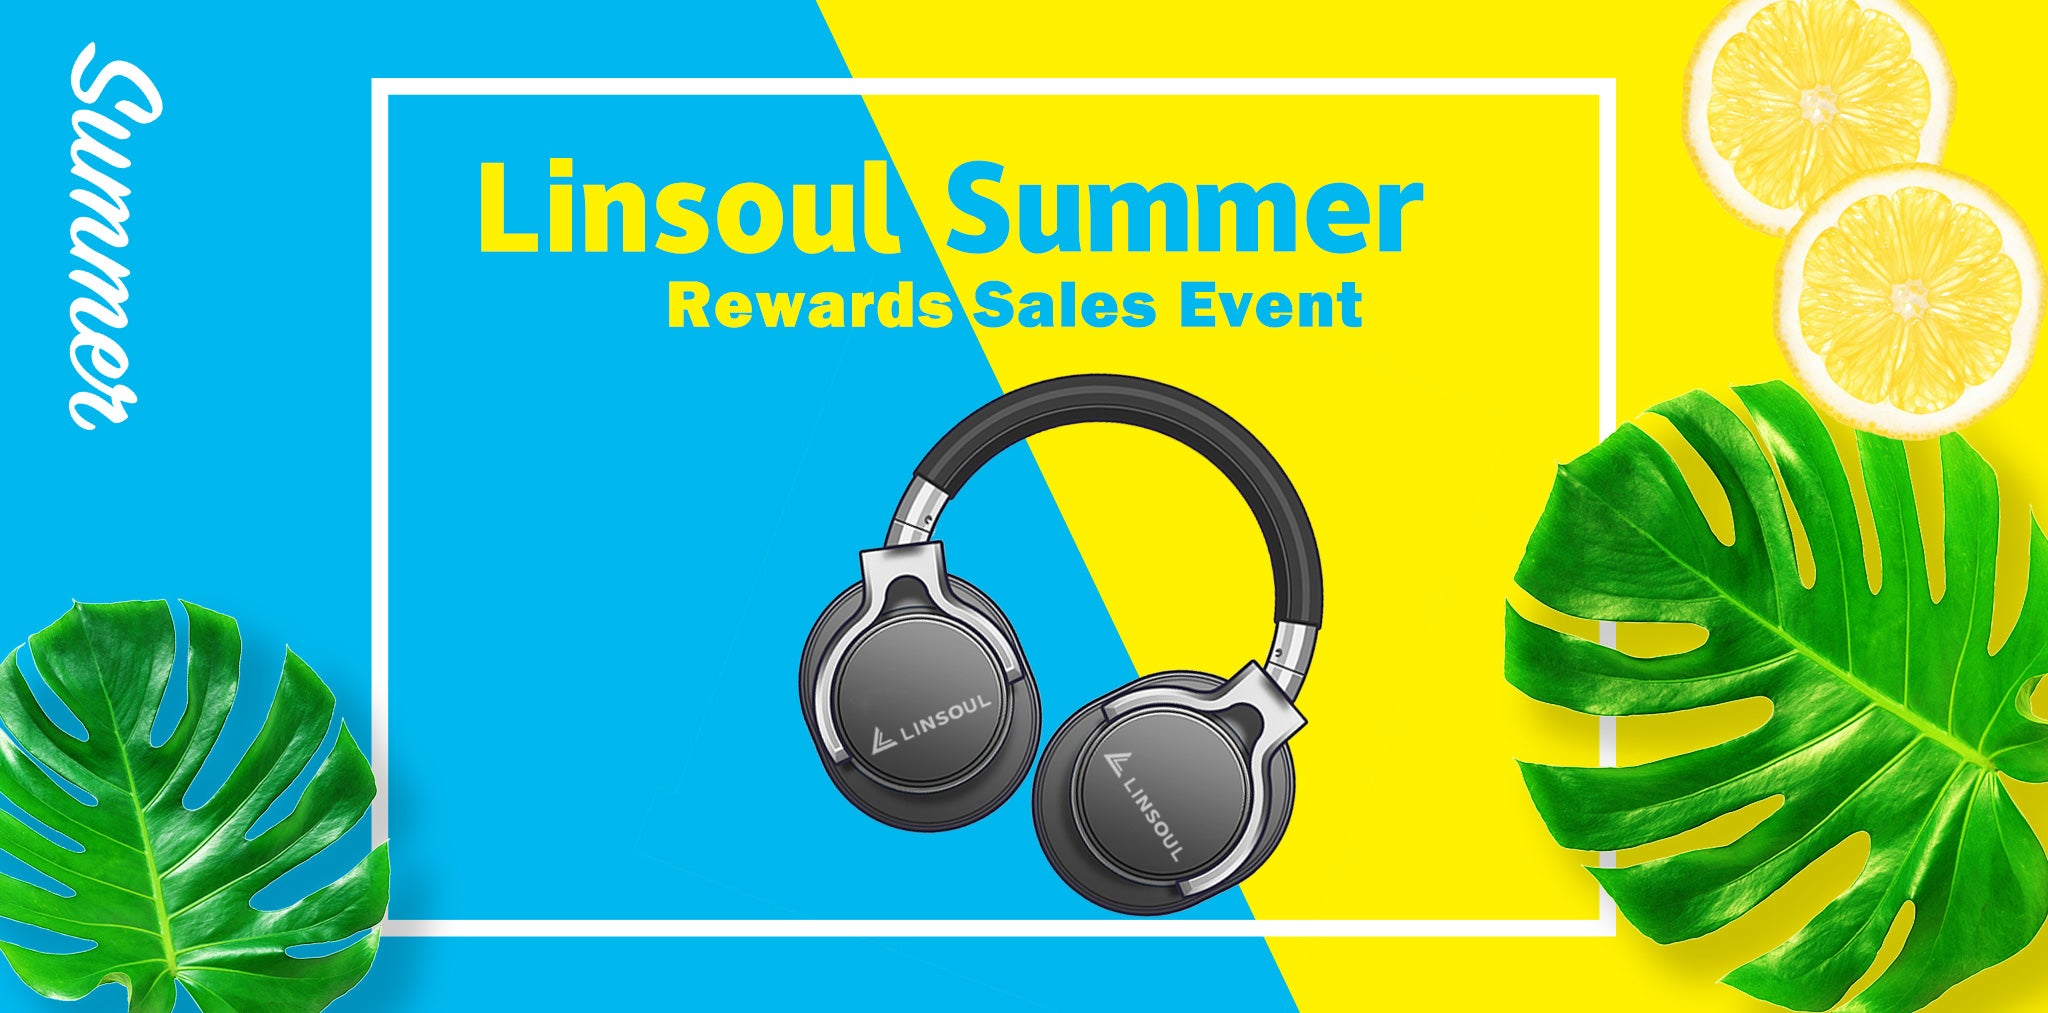 Linsoul Summer Rewards Sales Event